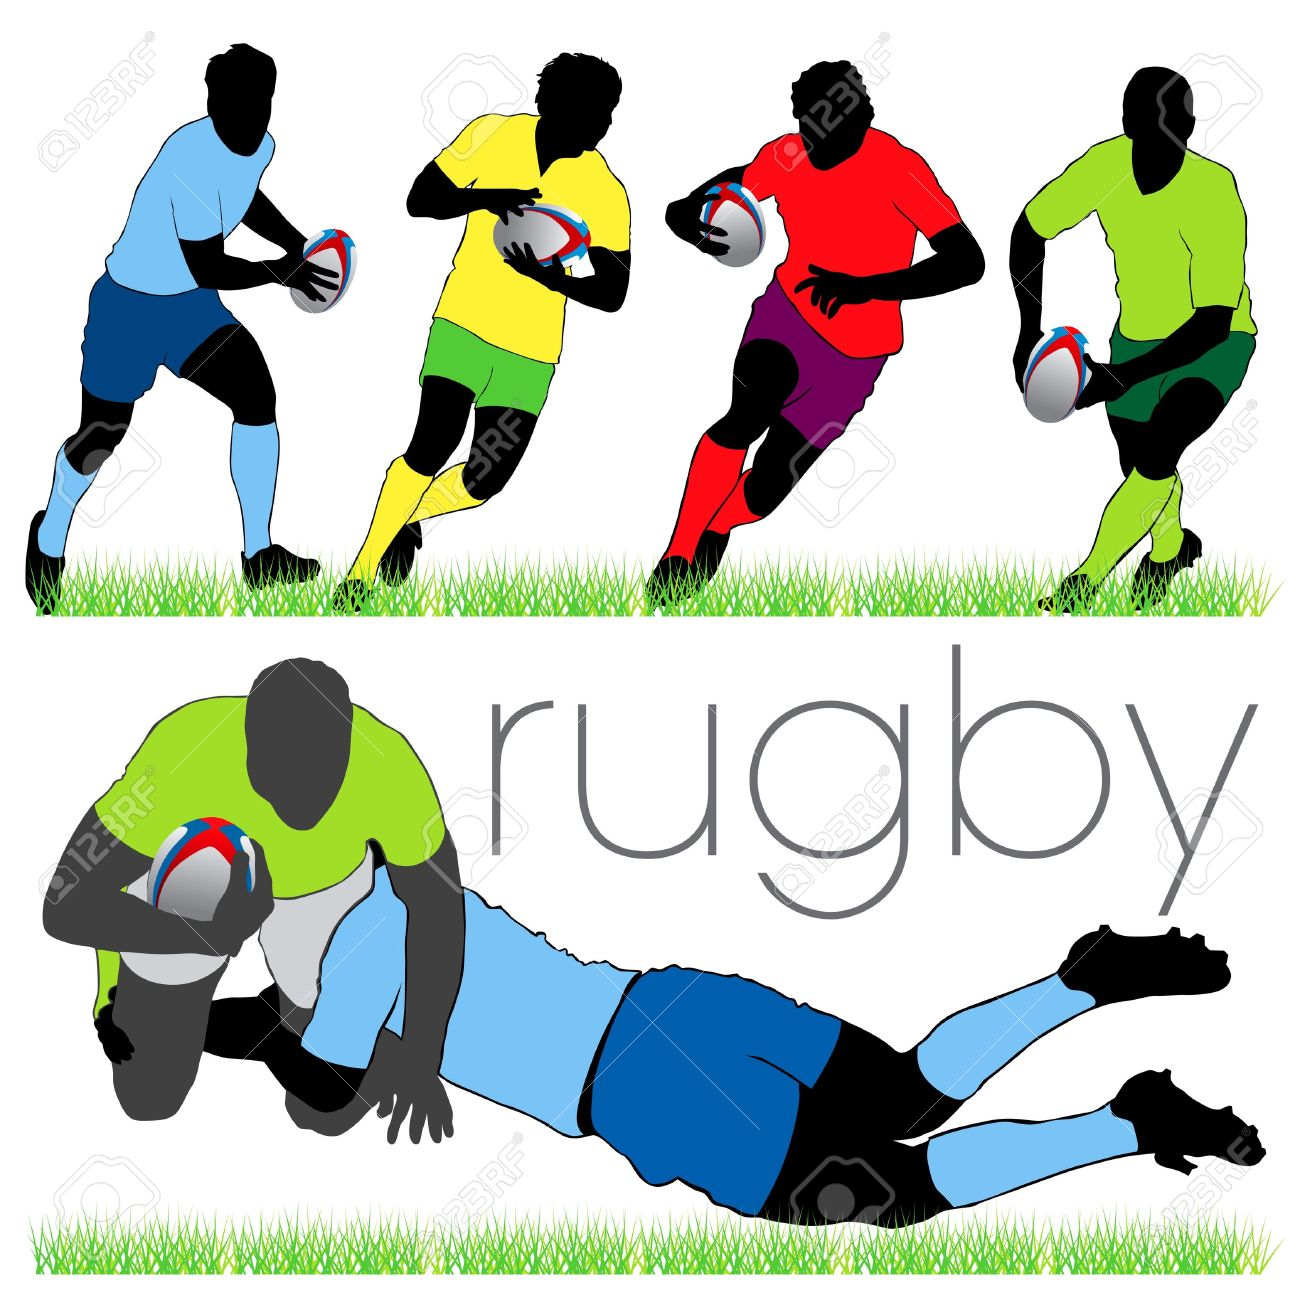 Rugby scrum clipart picture freeuse Rugby Players Silhouettes Set Royalty Free #53371 ... picture freeuse